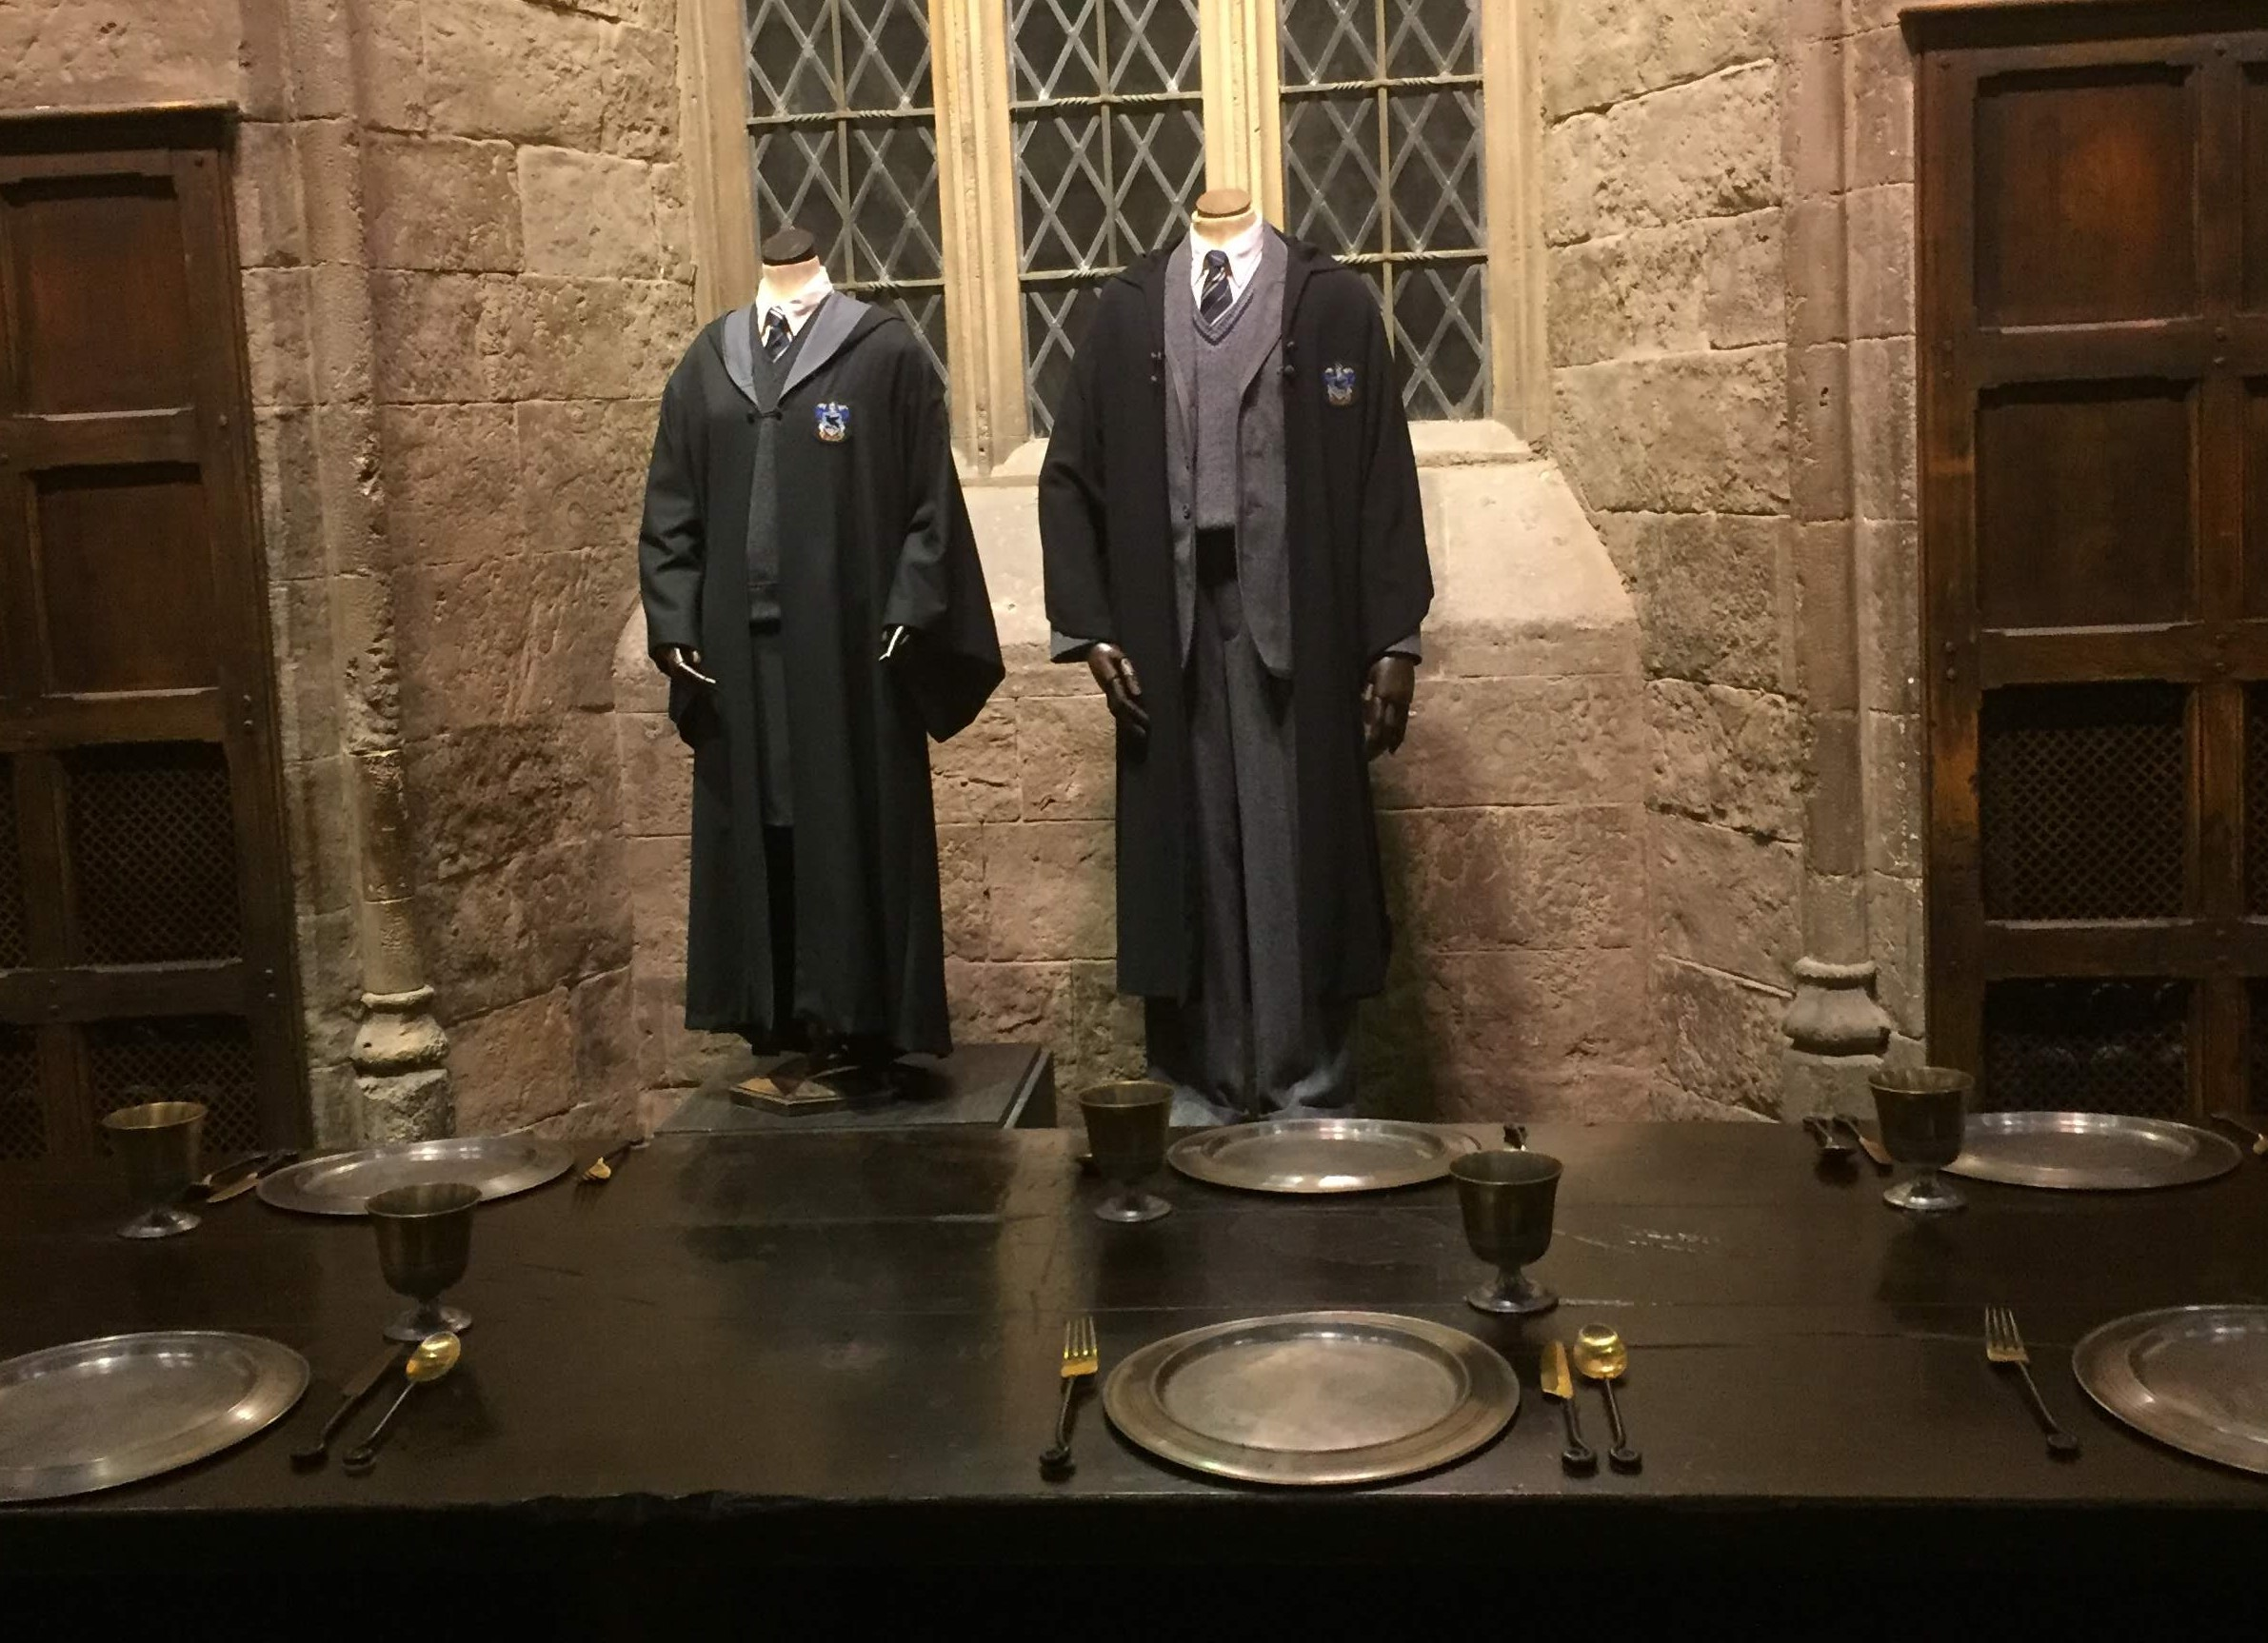 Costumes on display in the Great Hall at the Harry Potter Studio Tour in London